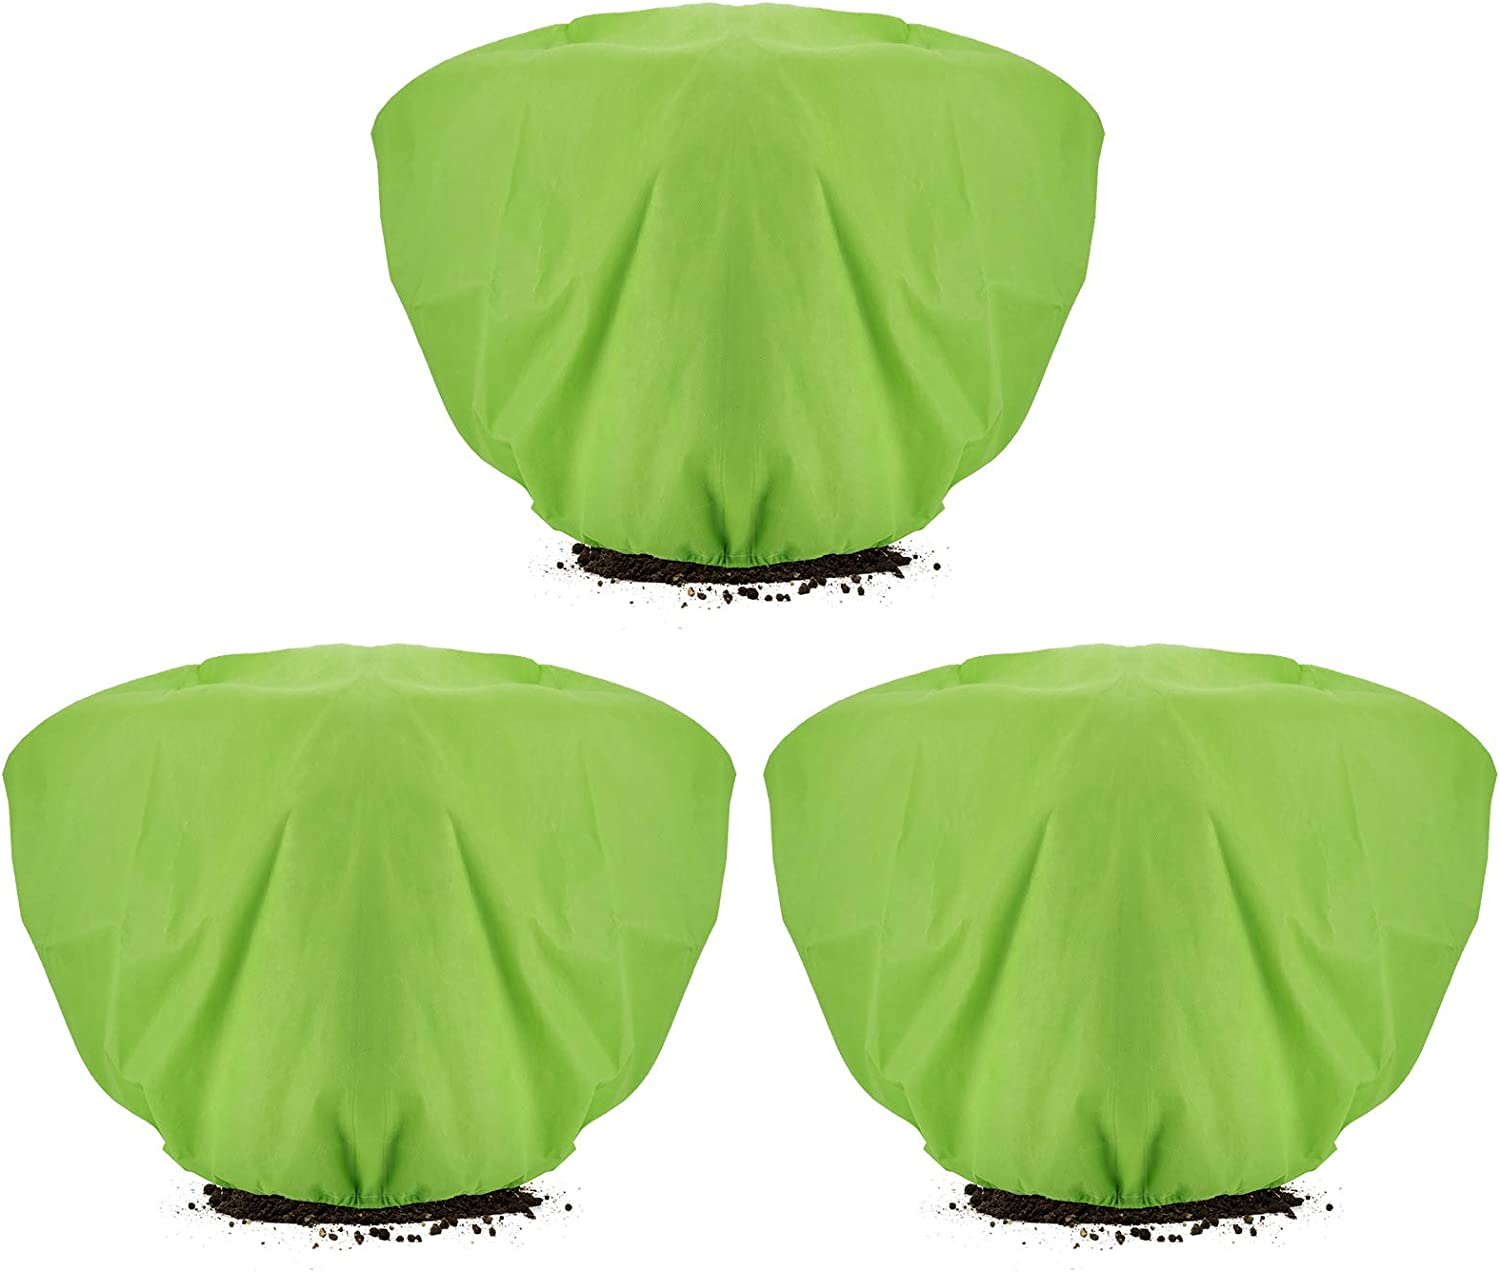 ANPHSIN 3 Pcs Green Plant Protection Covers- 39.3 × 19.6 Inch Horizontal Shrub Tree Plant Protection Wraps Covers Bags Frost Blanket with Drawstring for Outdoor Garden Plants Winter Freeze Protection